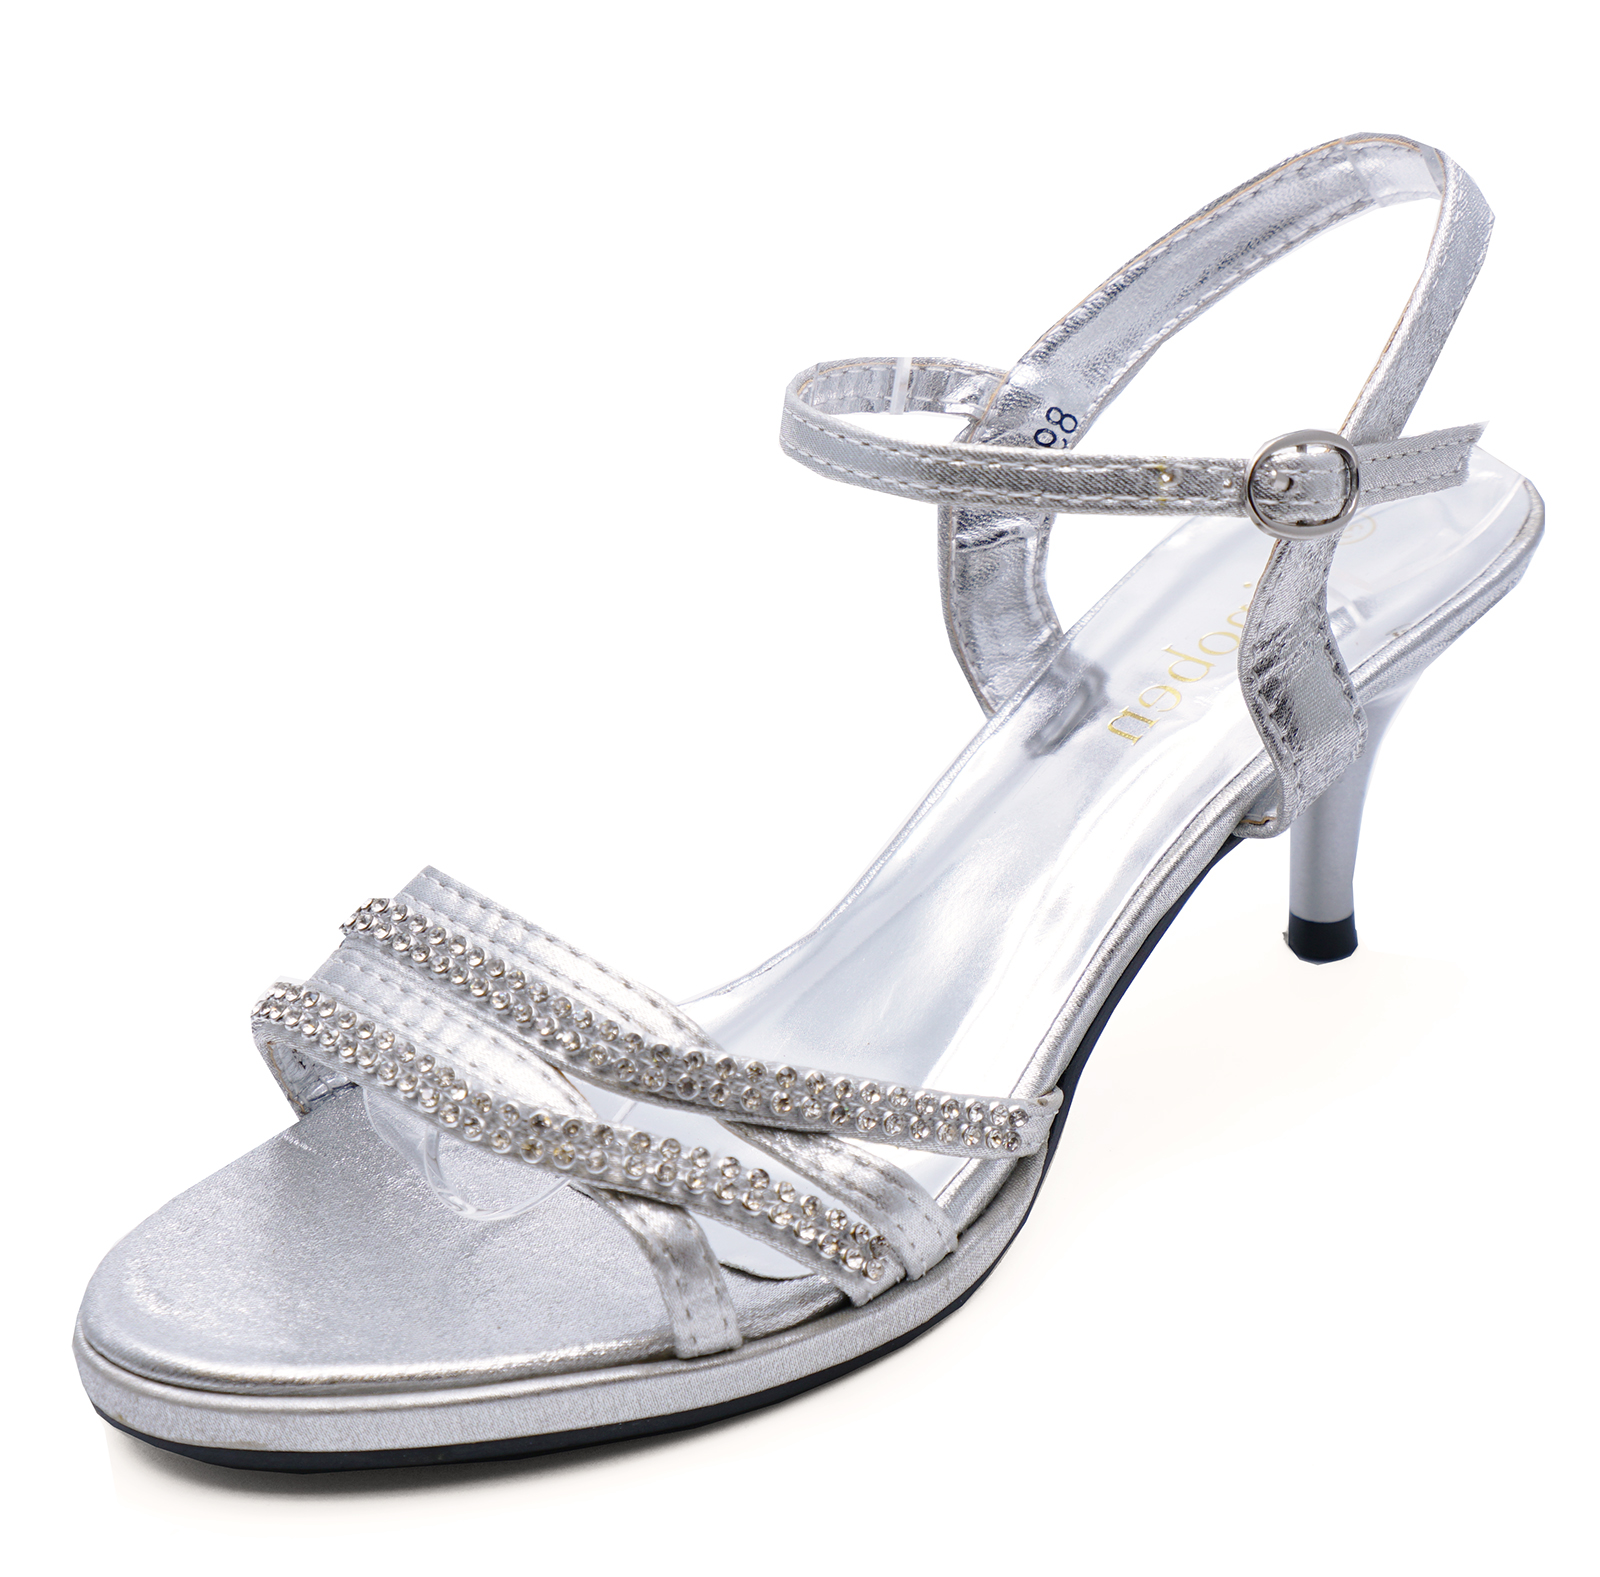 Sentinel WOMENS SILVER BRIDE WEDDING DIAMANTE SANDALS BRIDESMAID PROM SHOES  SIZES 3-8 290c6a9900